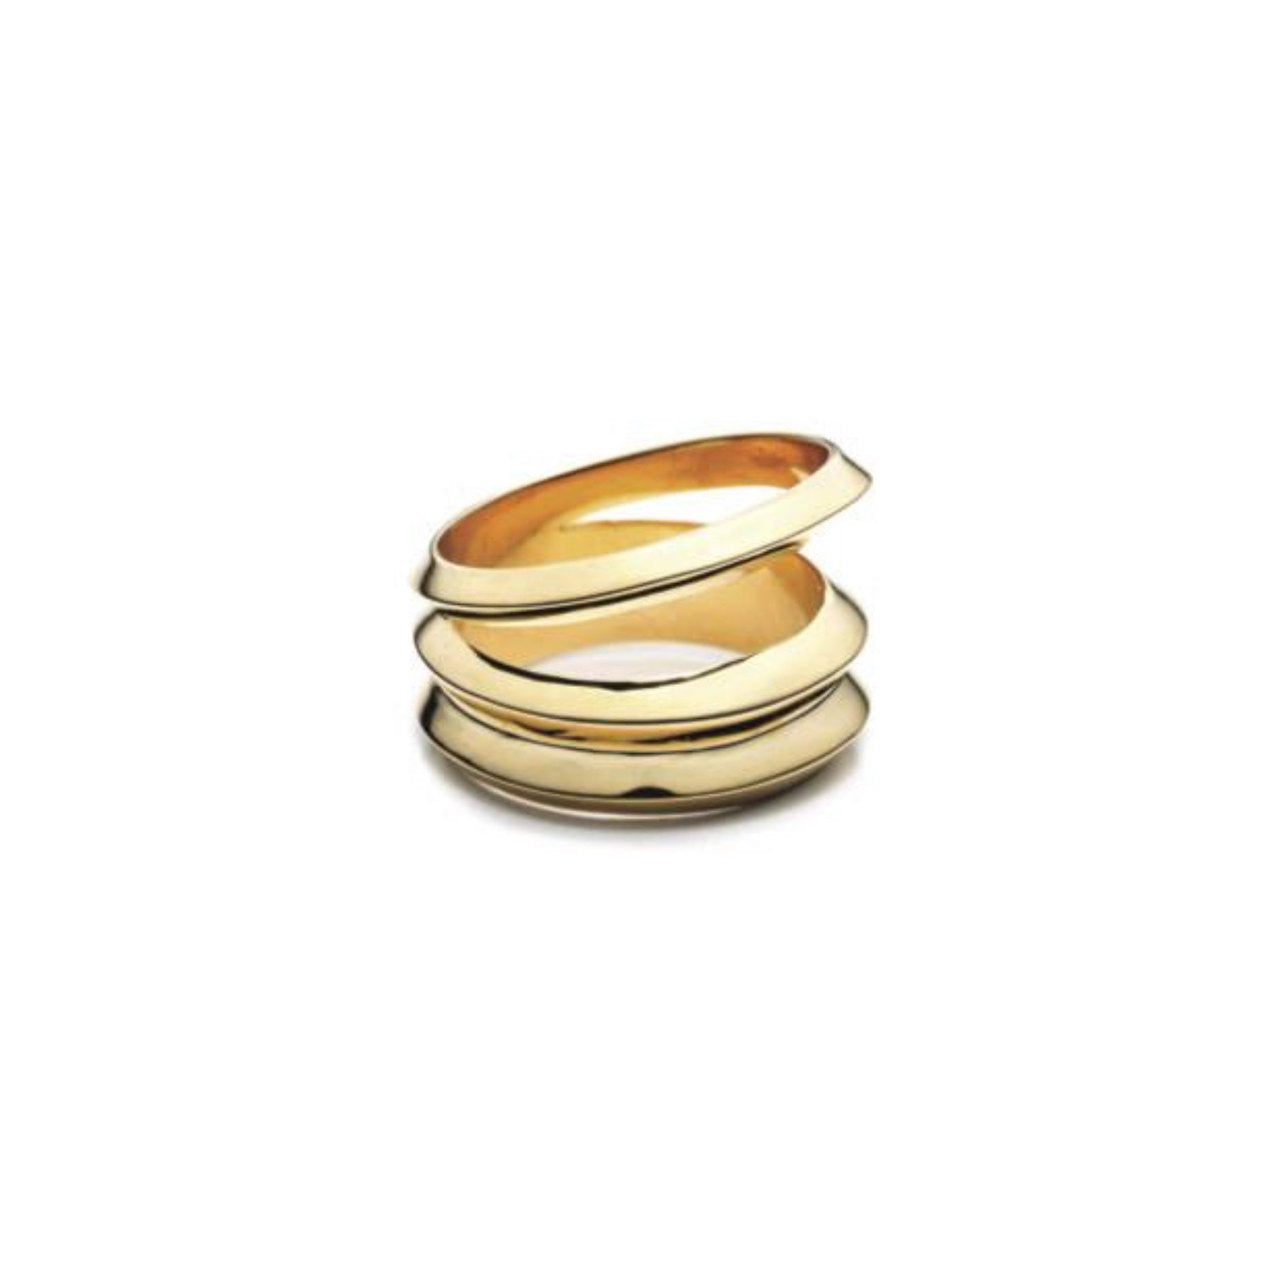 HEDRON THREE ROW RING - 18K GOLD PLATED BRASS